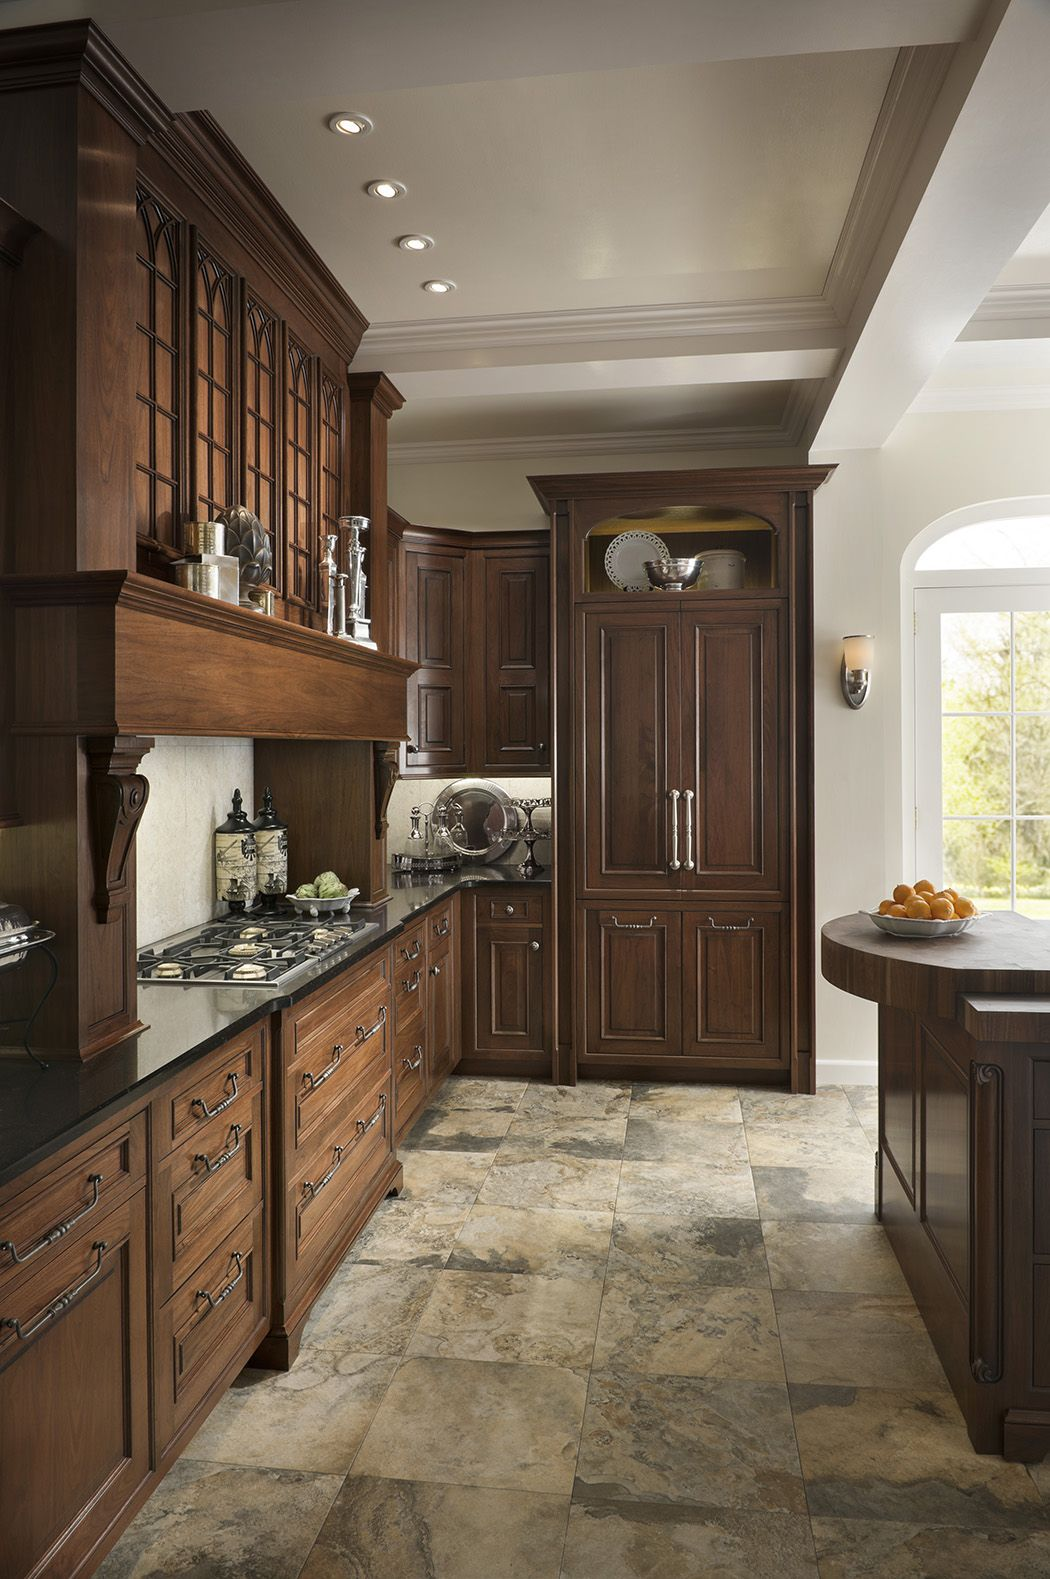 Elegant Traditions Kitchen By Woodmode Shown In Sable And Wall Street Finishes O Cottage Kitchen Design Kitchen Inspiration Design Traditional Kitchen Design